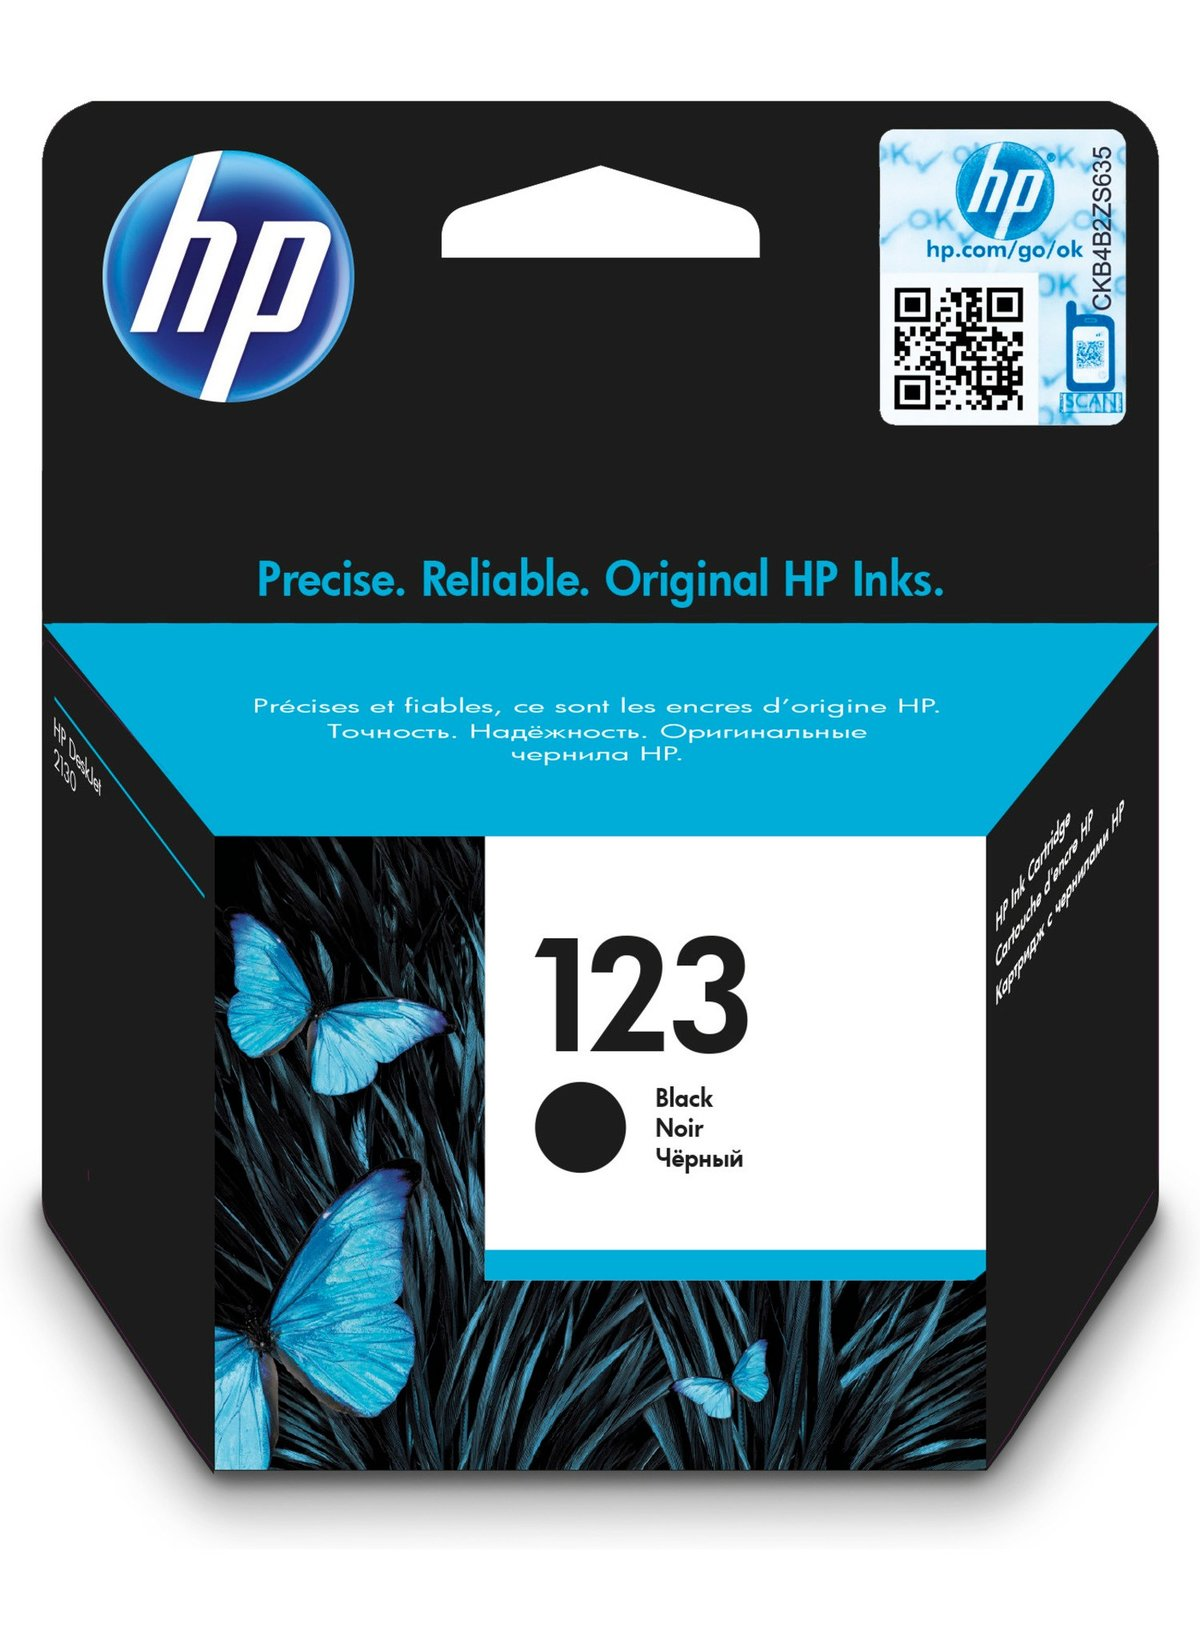 HP 123 Black Ink Cartridge Price In Kuwait |Offers On HP Ink